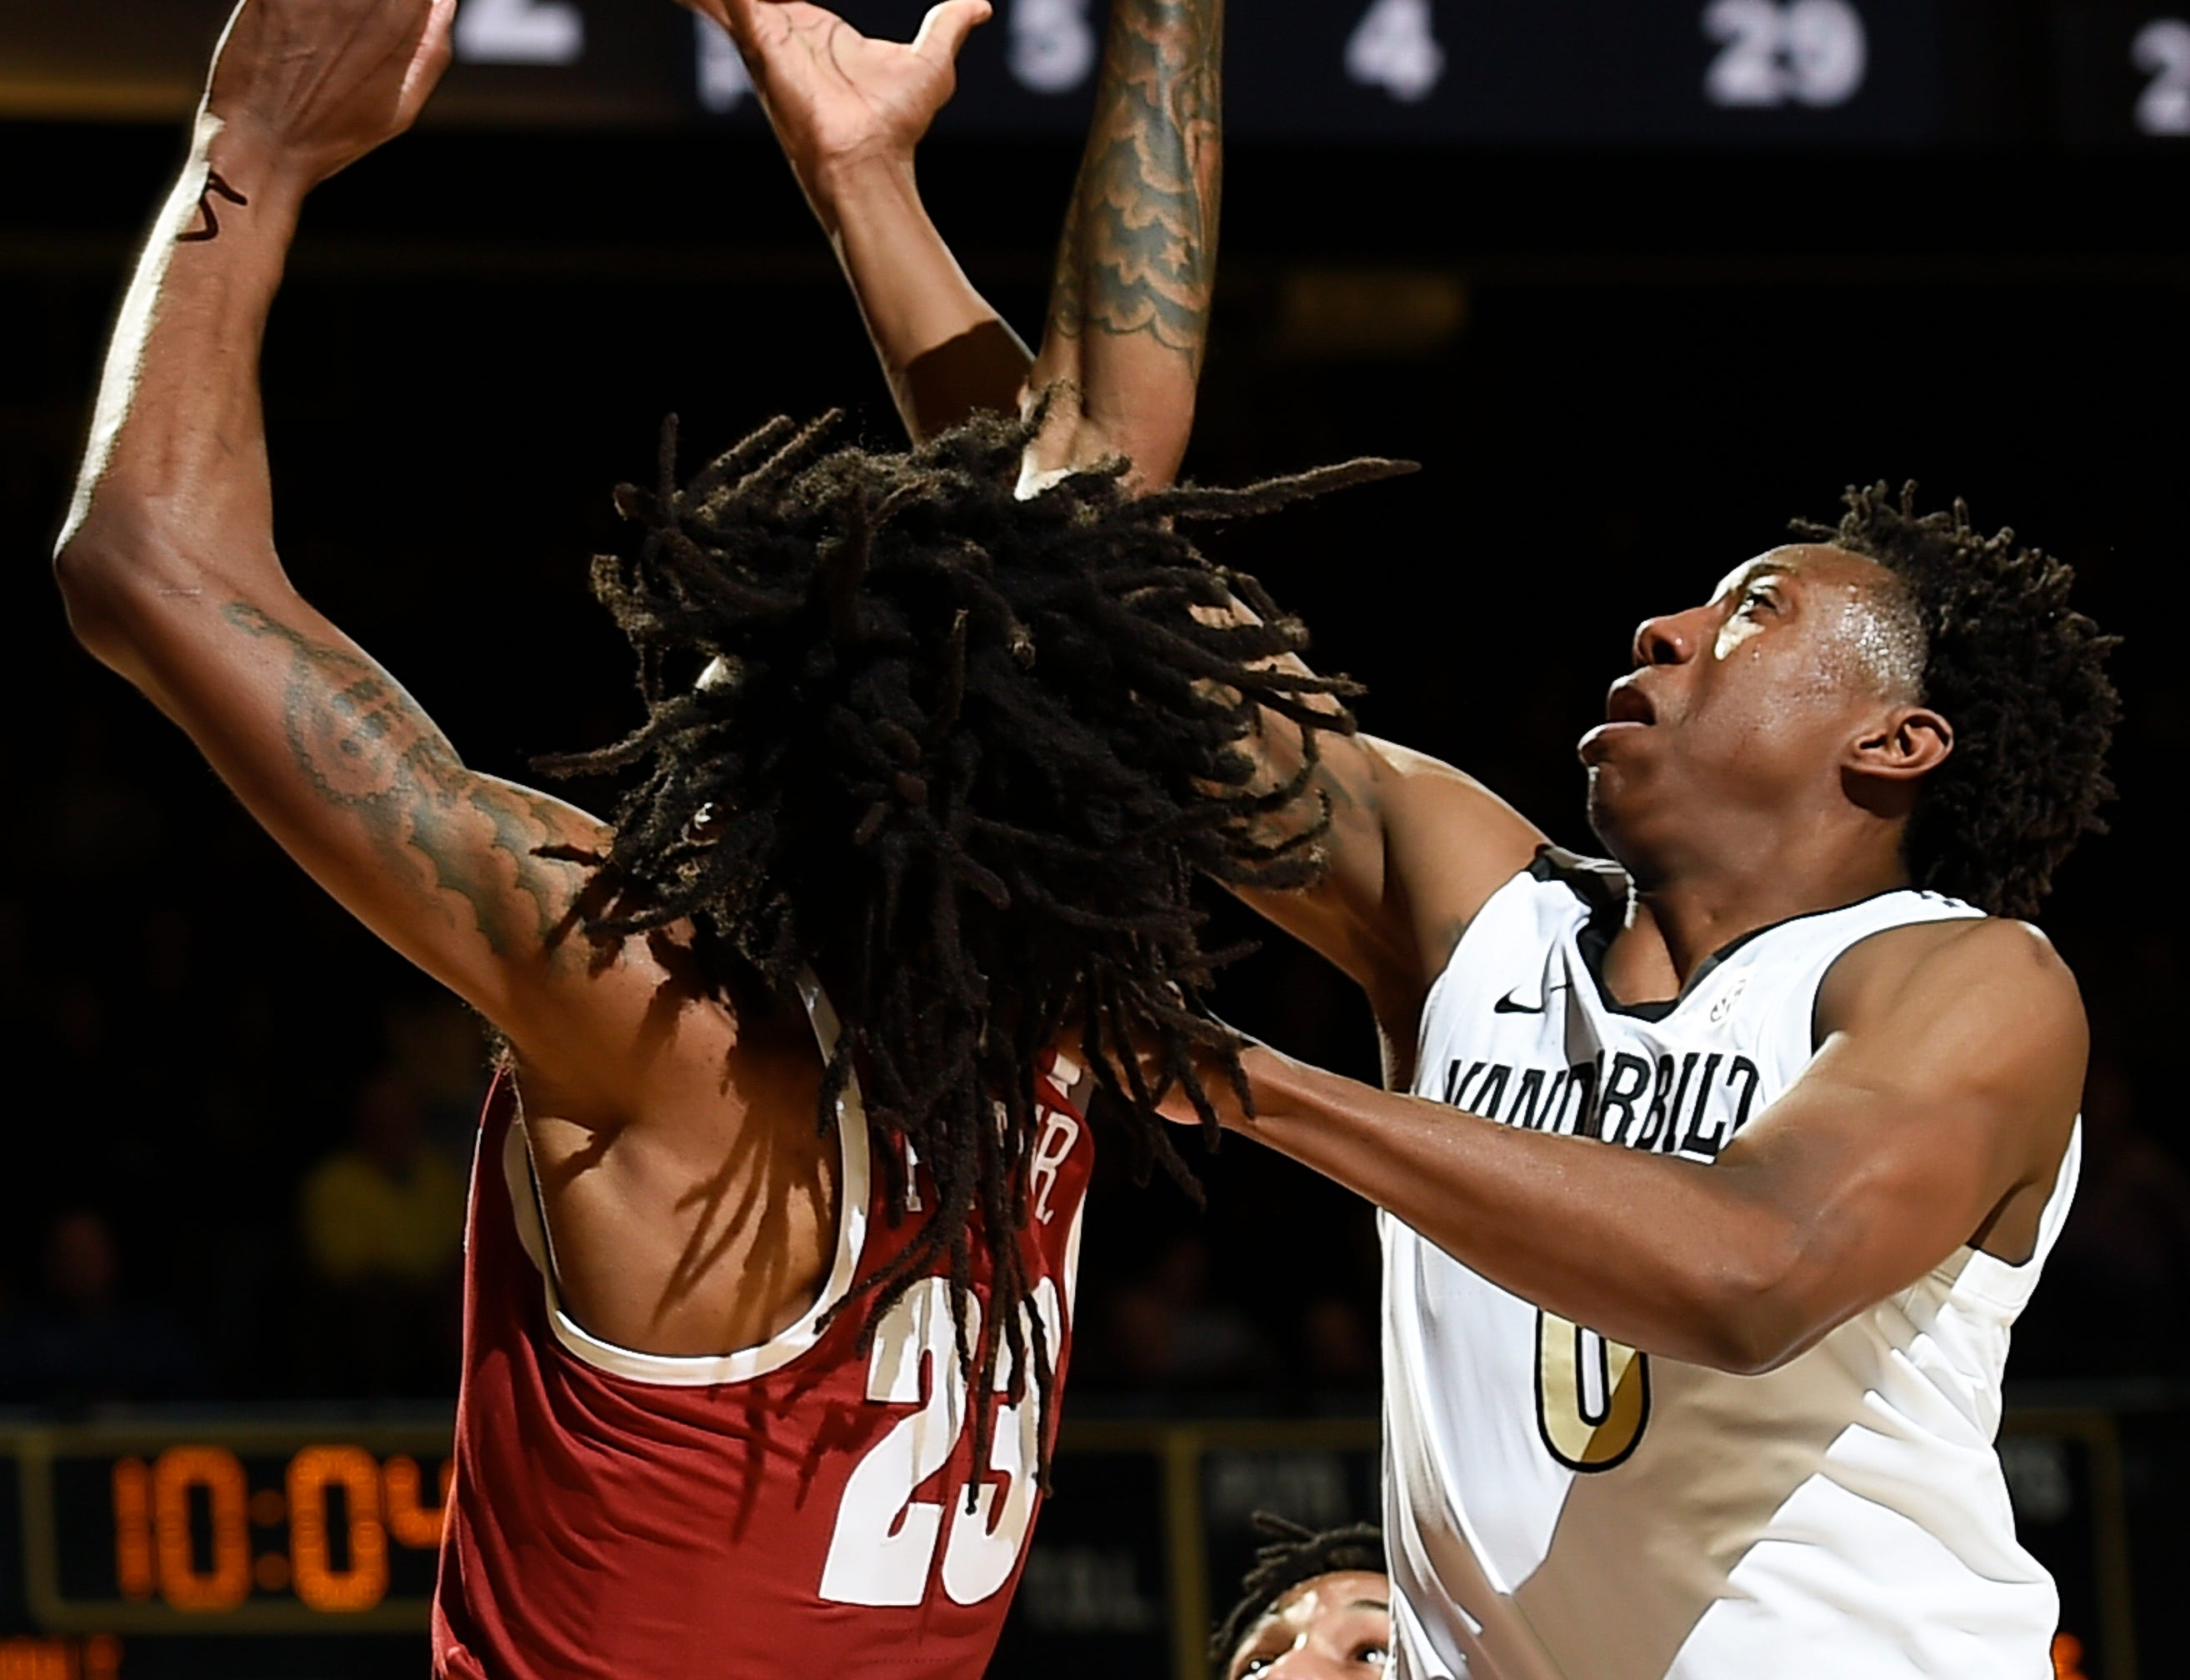 Vanderbilt guard Saben Lee (0) shoots over Alabama guard John Petty (23) during the second half at Memorial Gym Saturday Feb. 9, 2019 in Nashville, Tenn.